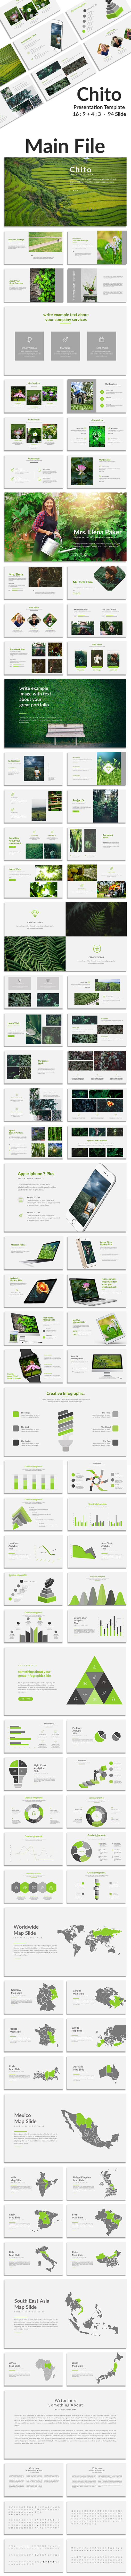 Chito Multipurpose Google Slide Template - Google Slides Presentation Templates